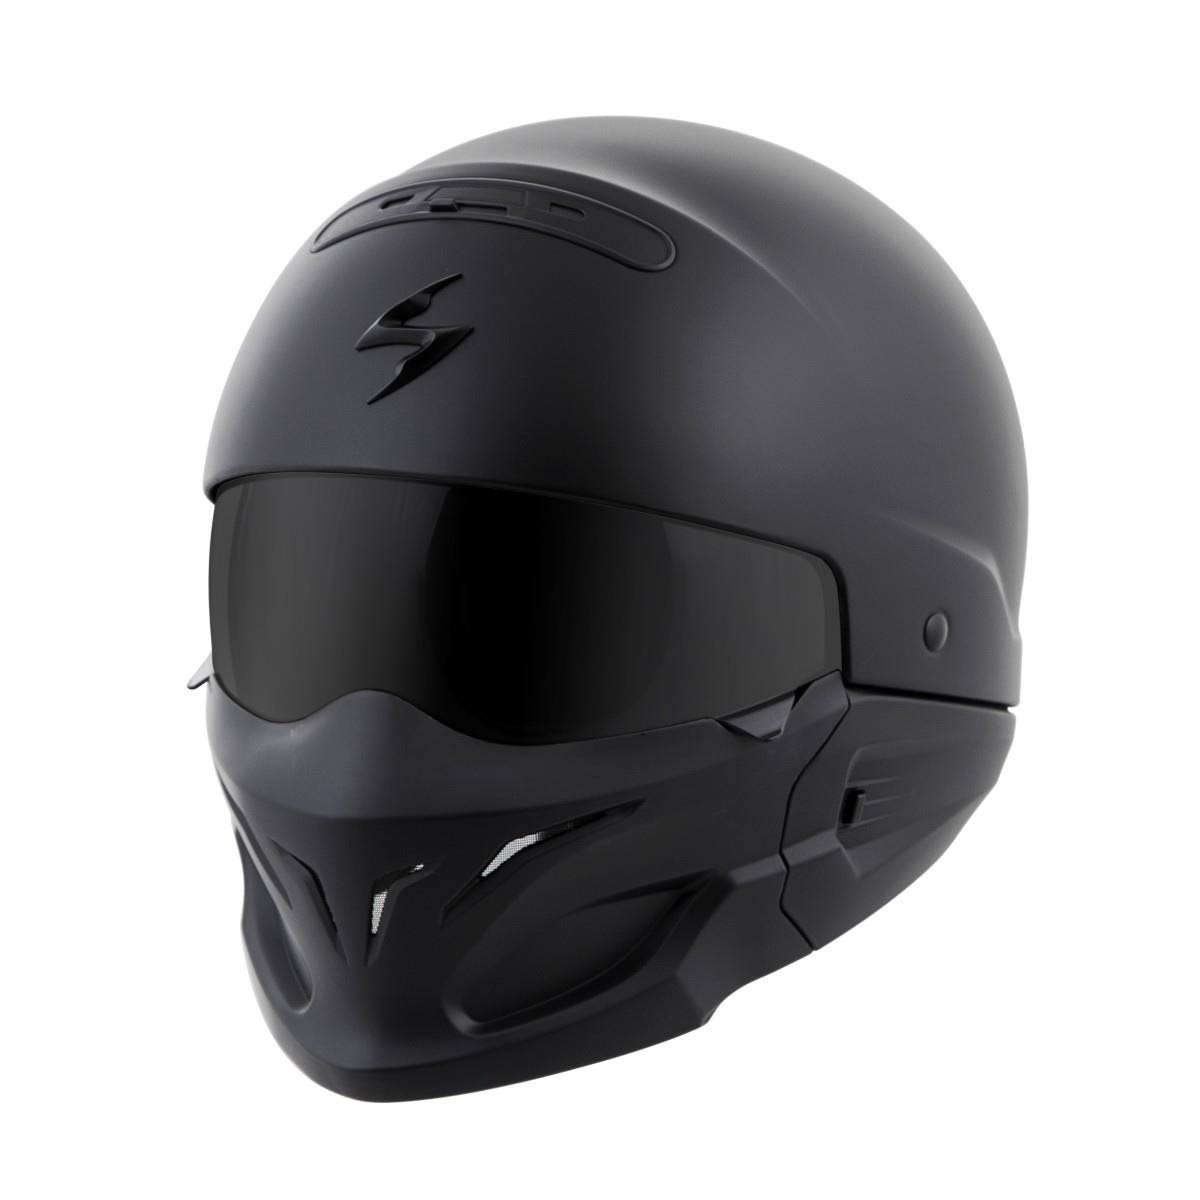 Scorpion COV0105 Covert Motorcycle Helmet - Matte Black, Large